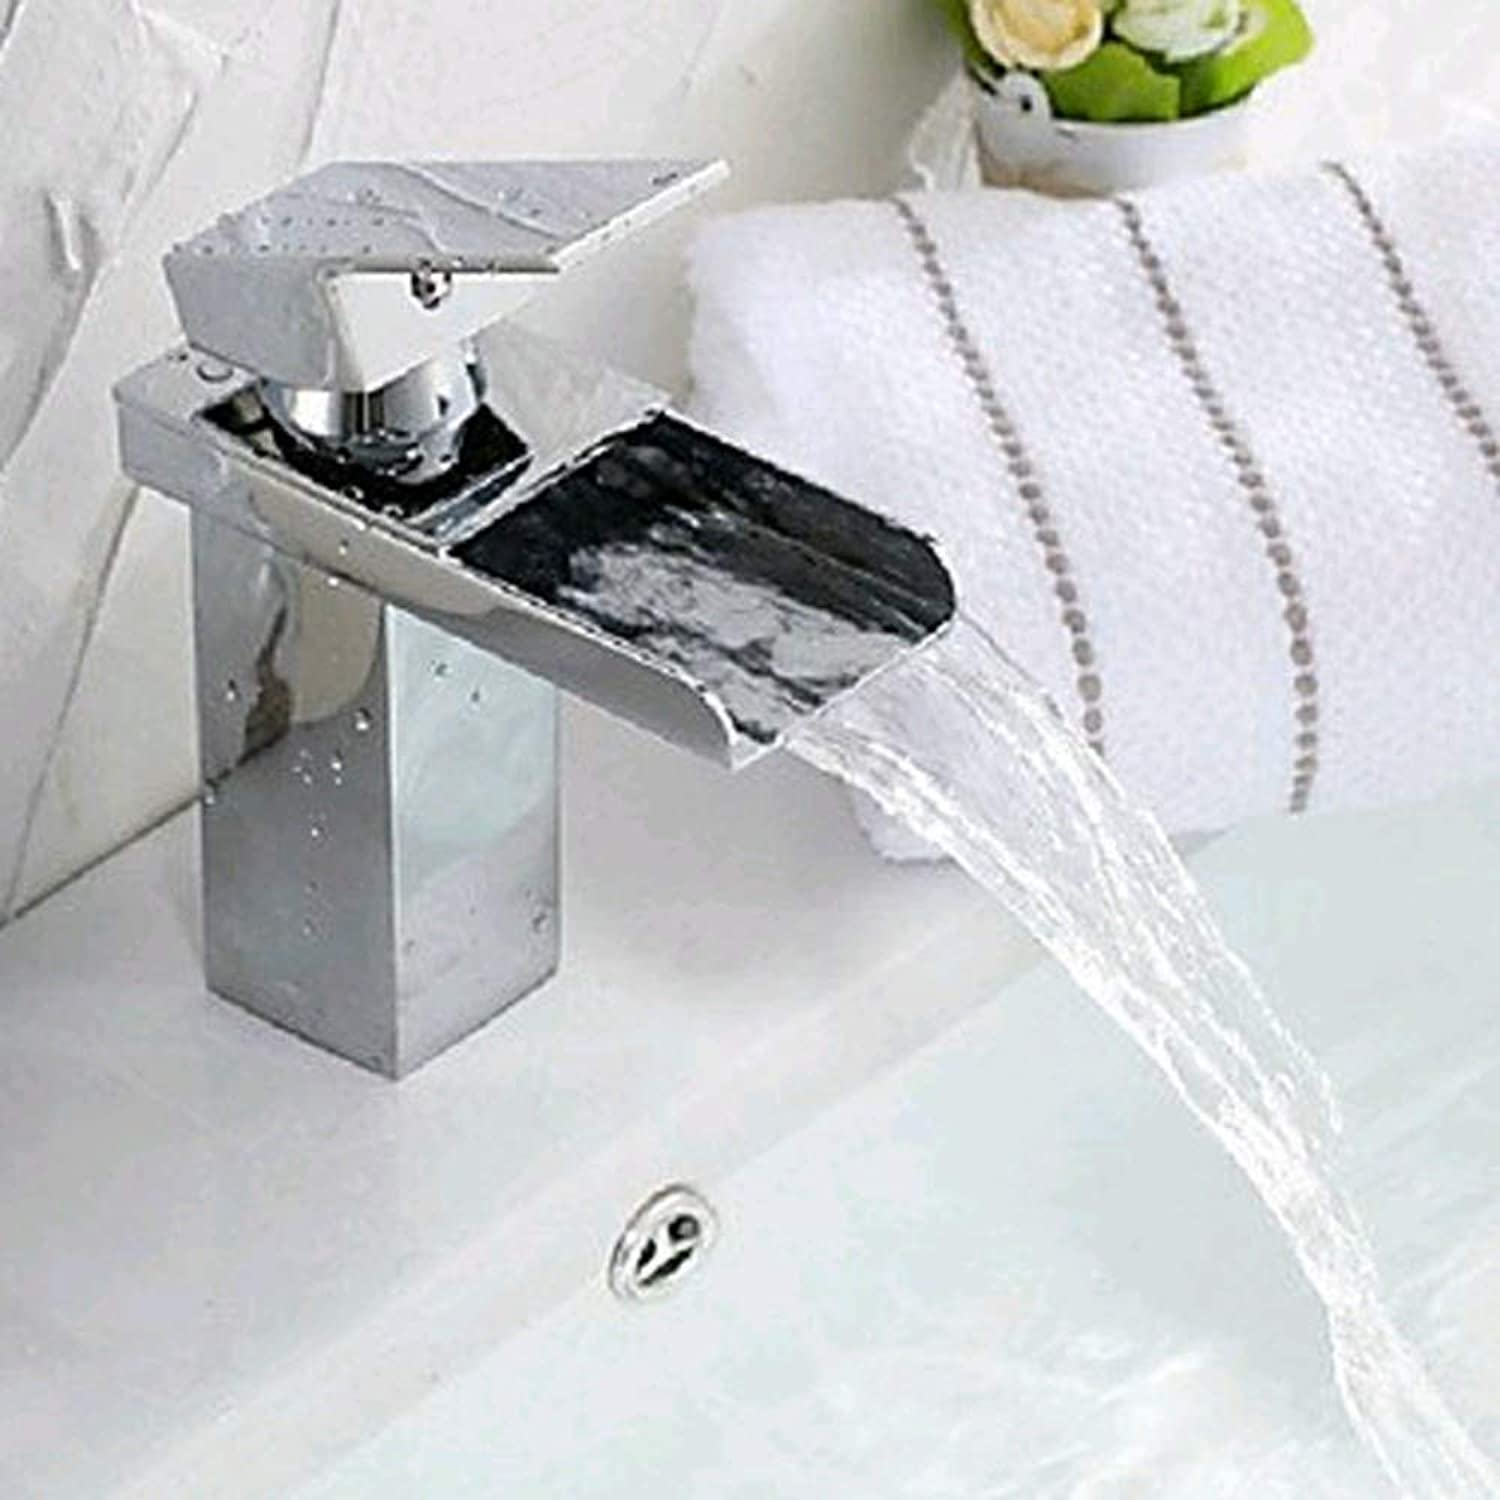 Taps Faucet Waterfall Water Hot and Cold Water Basin Faucet Short Paragraph Above Counter Basin Leading Art Faucet, Ey-P0029